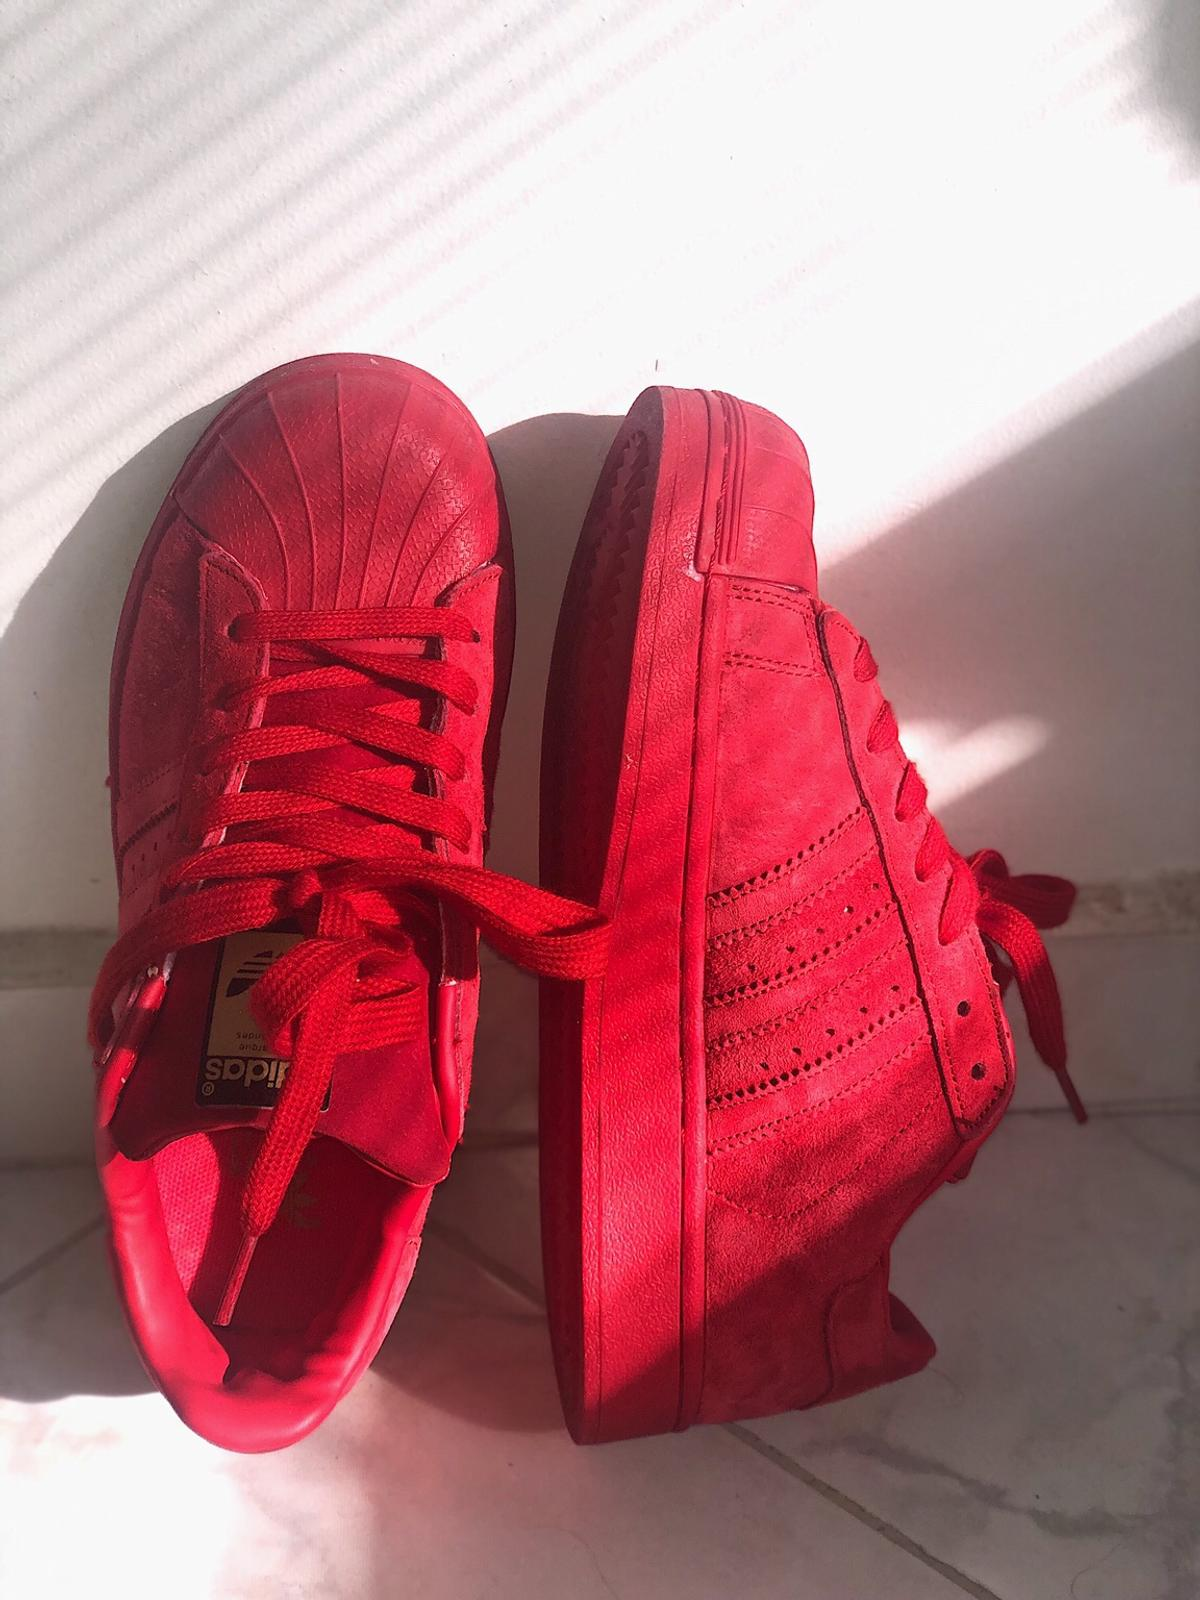 Adidas Red Velvet Shoes in 1415 Vitosha for €45.00 for sale ...